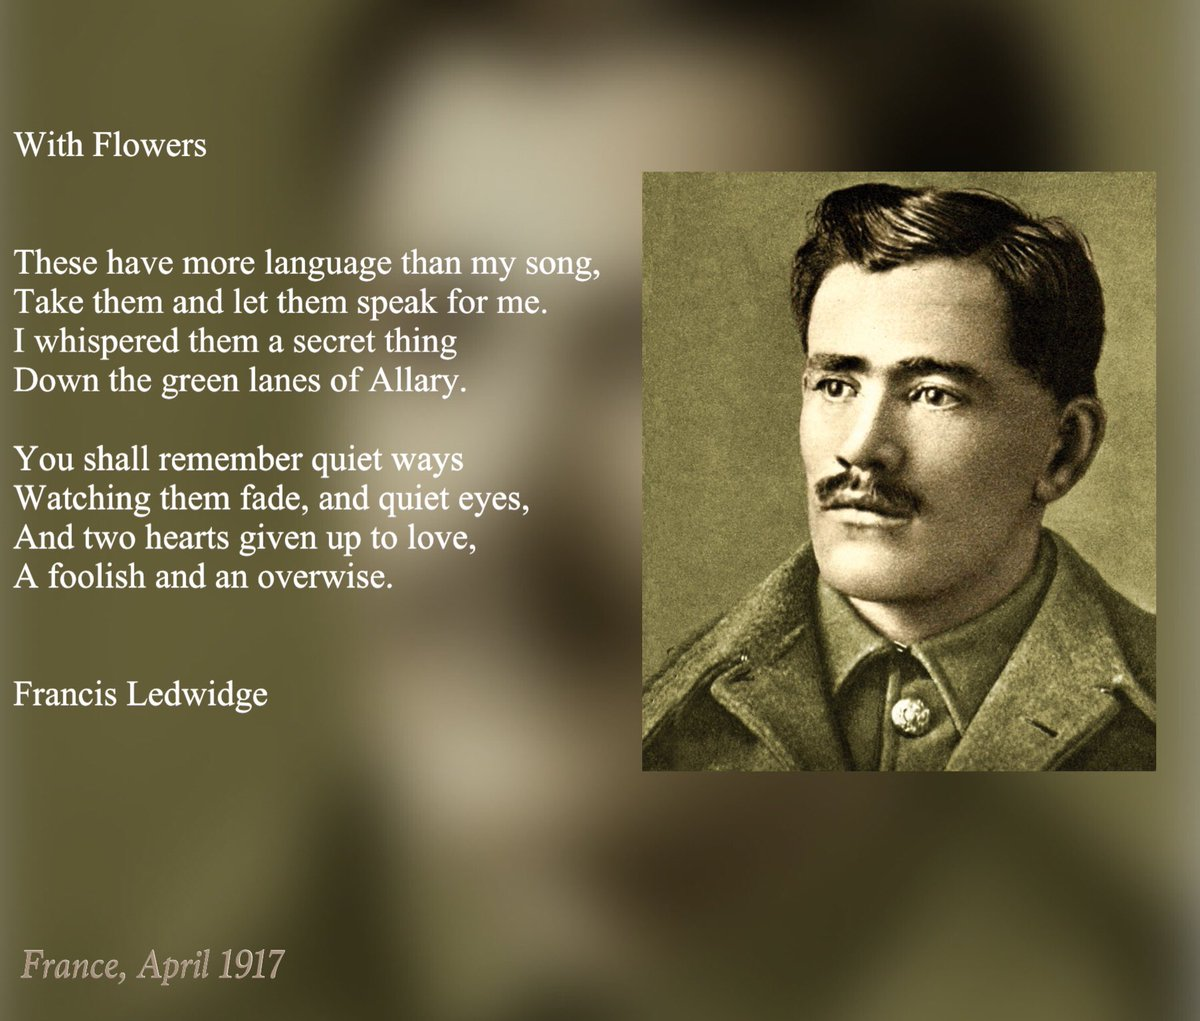 Francis Ledwidge photo, Francis Ledwidge image